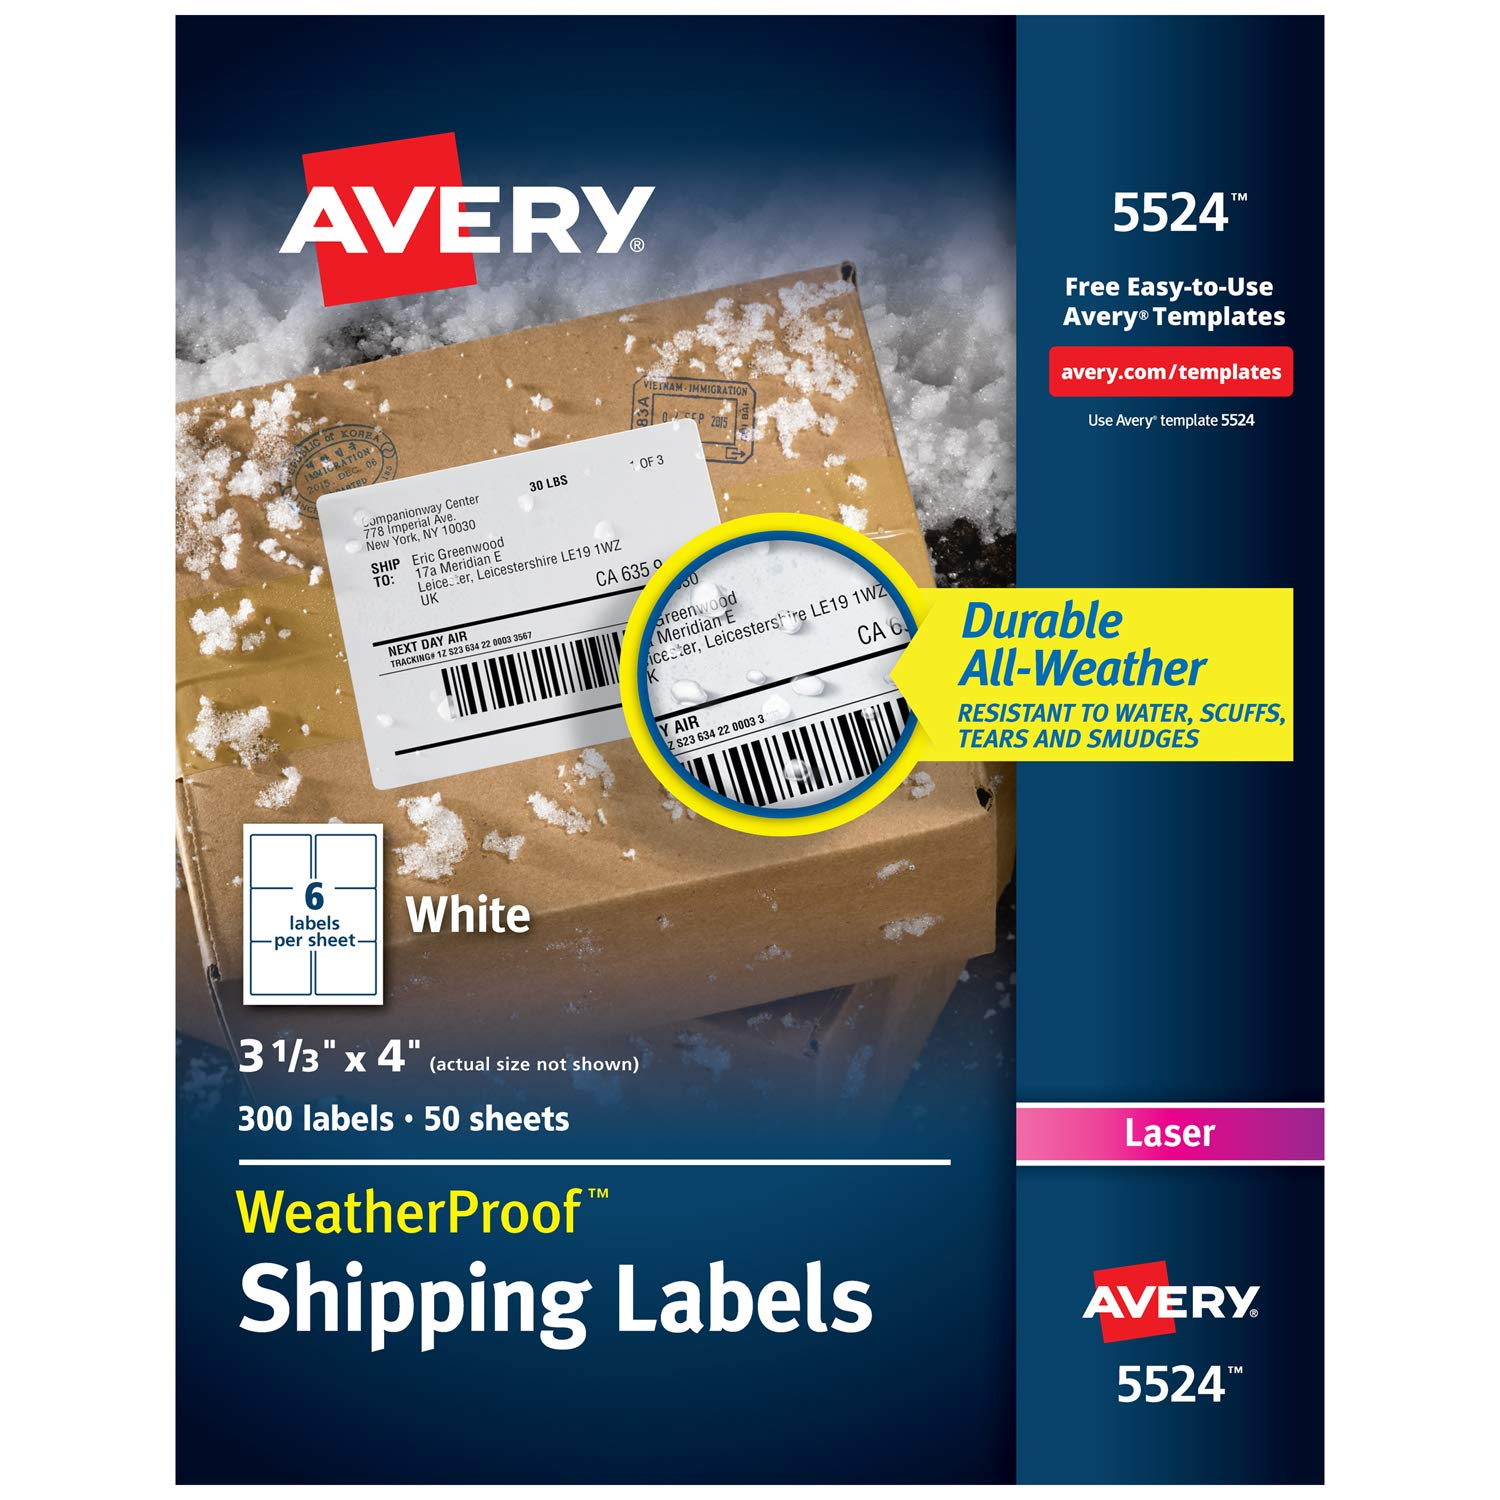 Avery WeatherProof Mailing Labels with TrueBlock Technology for Laser Printers 3-1/3'' x 4'', Box of 300 (5524)